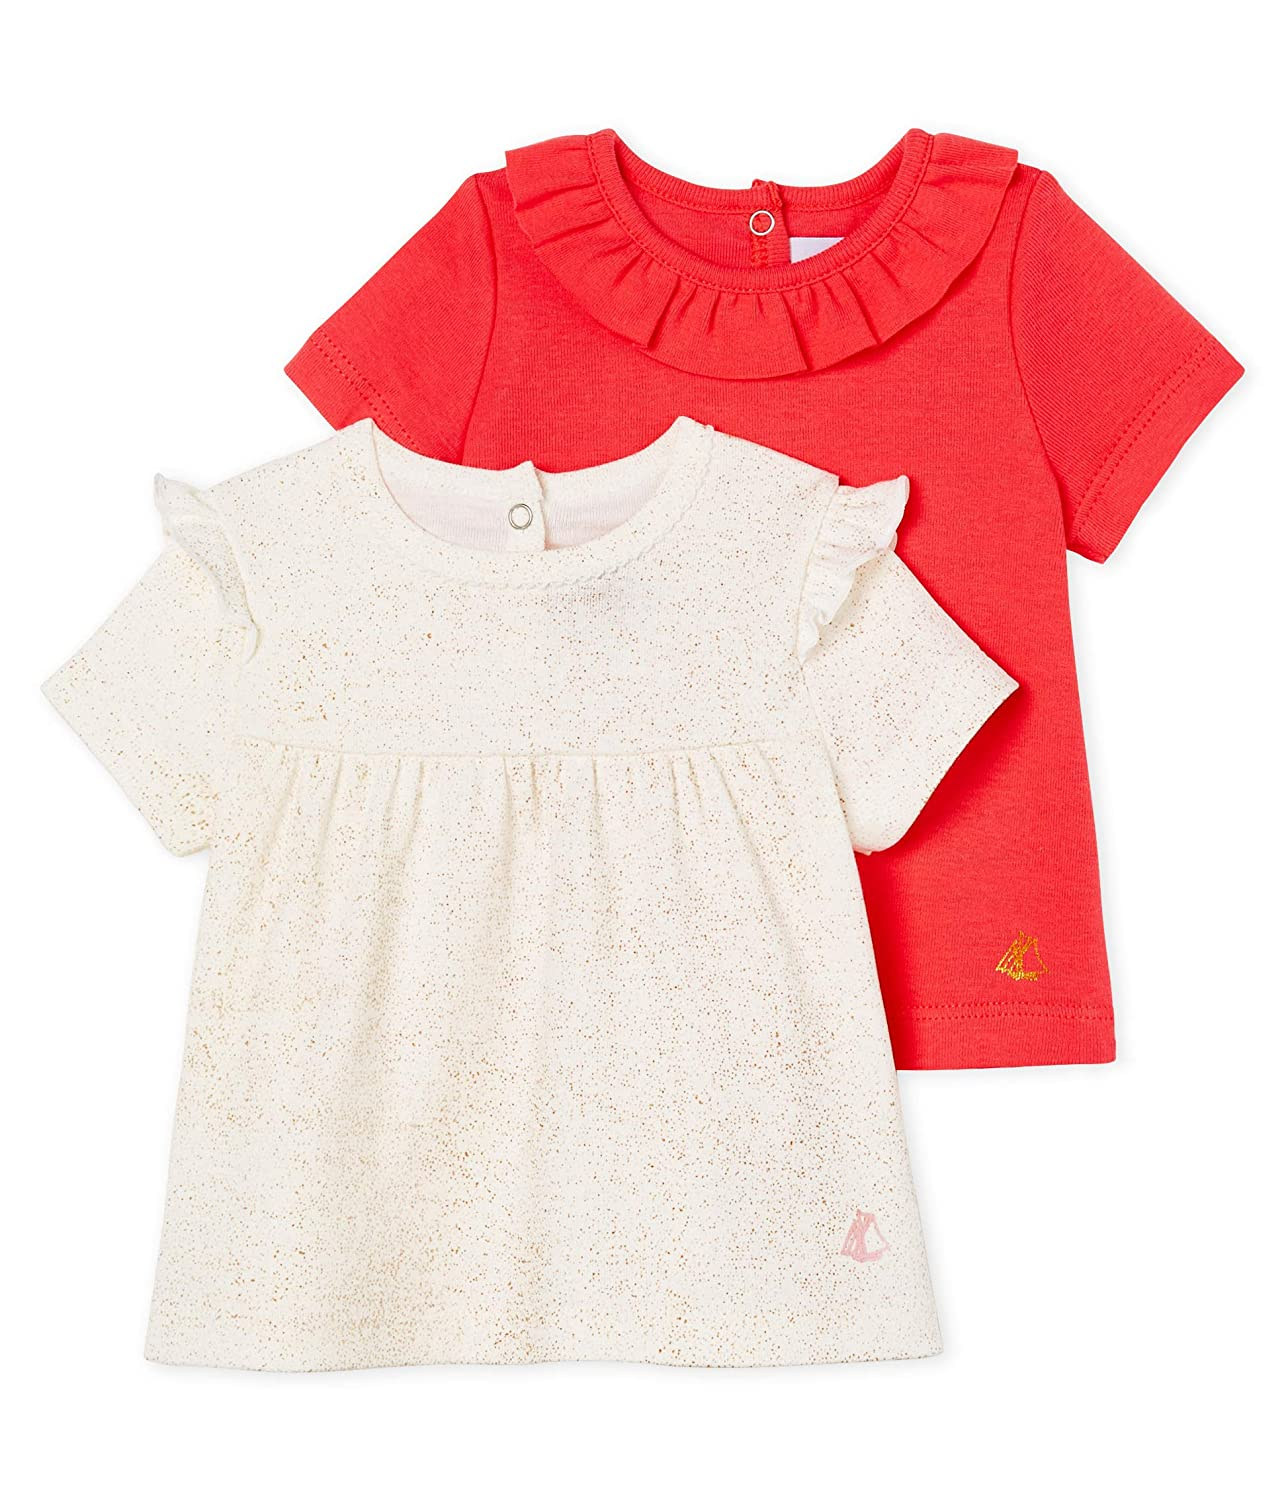 Petit Bateau Baby Girls Lot Ts Ais Kniited Tank Top Pack of 2